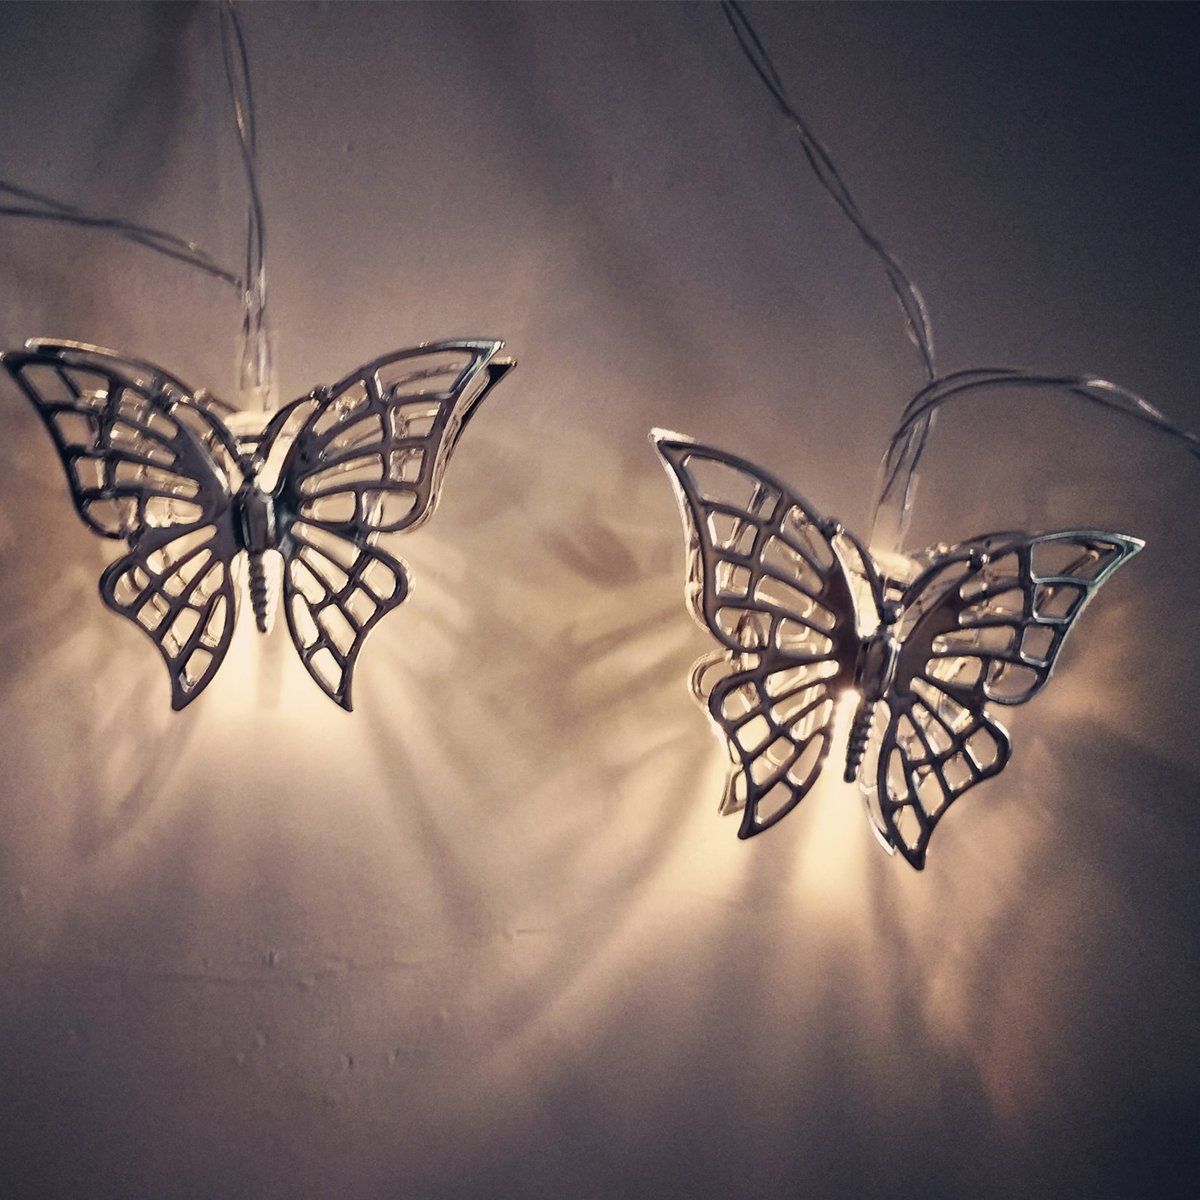 fantastic me 10ft 20 LED Iron Butterfly Fairy String Lights Night Lamp-Battery Powered-Decoration for Home Bedroom Kids Nursery Room Christmas Tree Wedding Party Garden by fantastic me (Image #6)